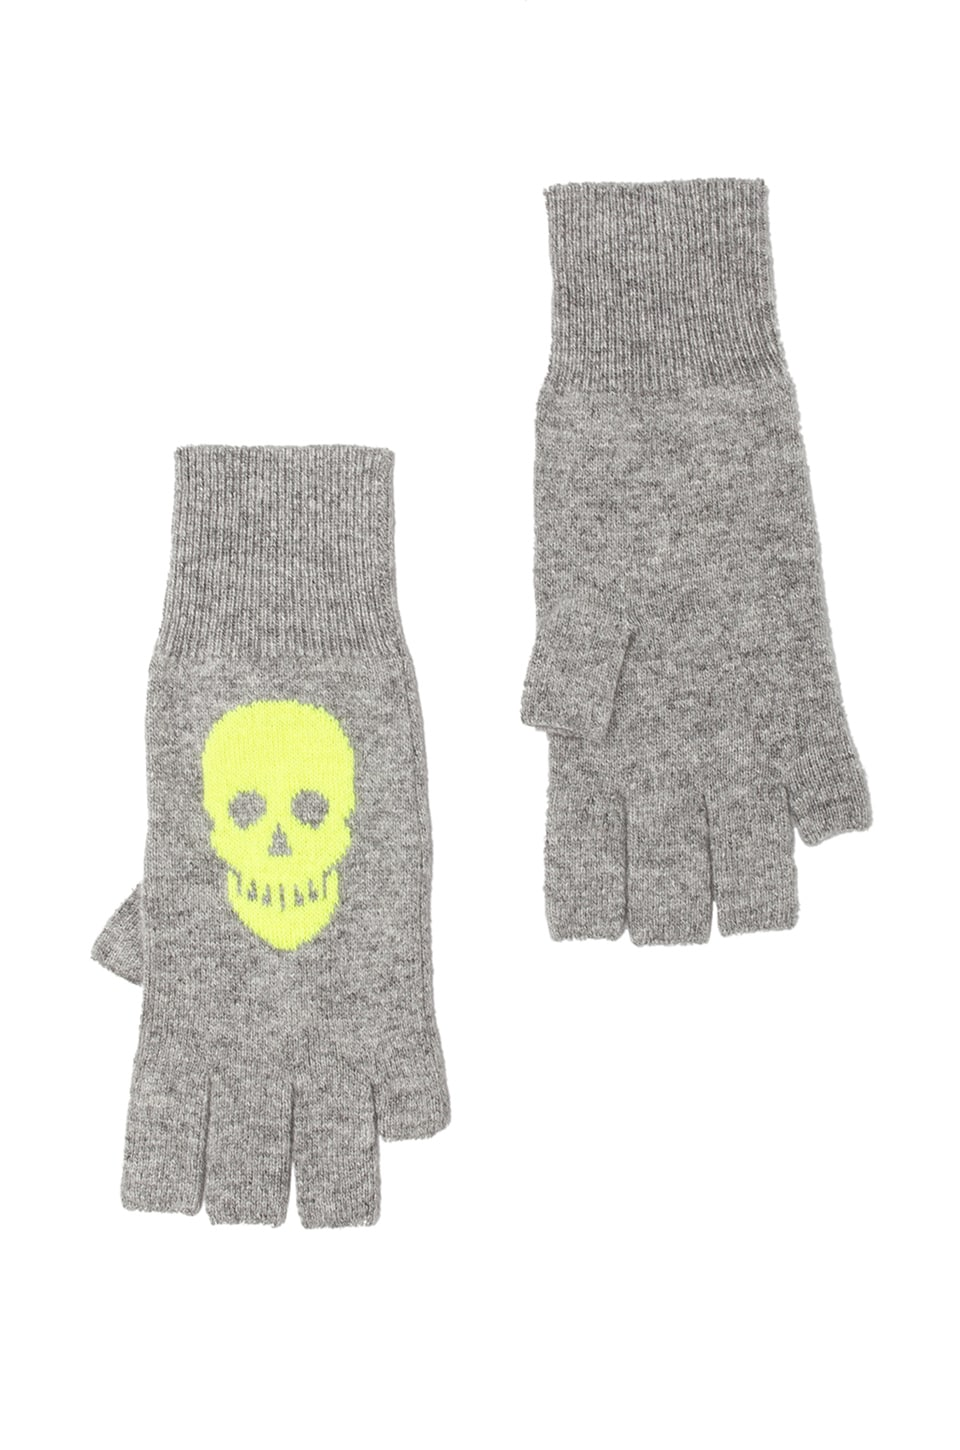 Autumn Cashmere Skull Fingerless Gloves in Cement/Day Glo